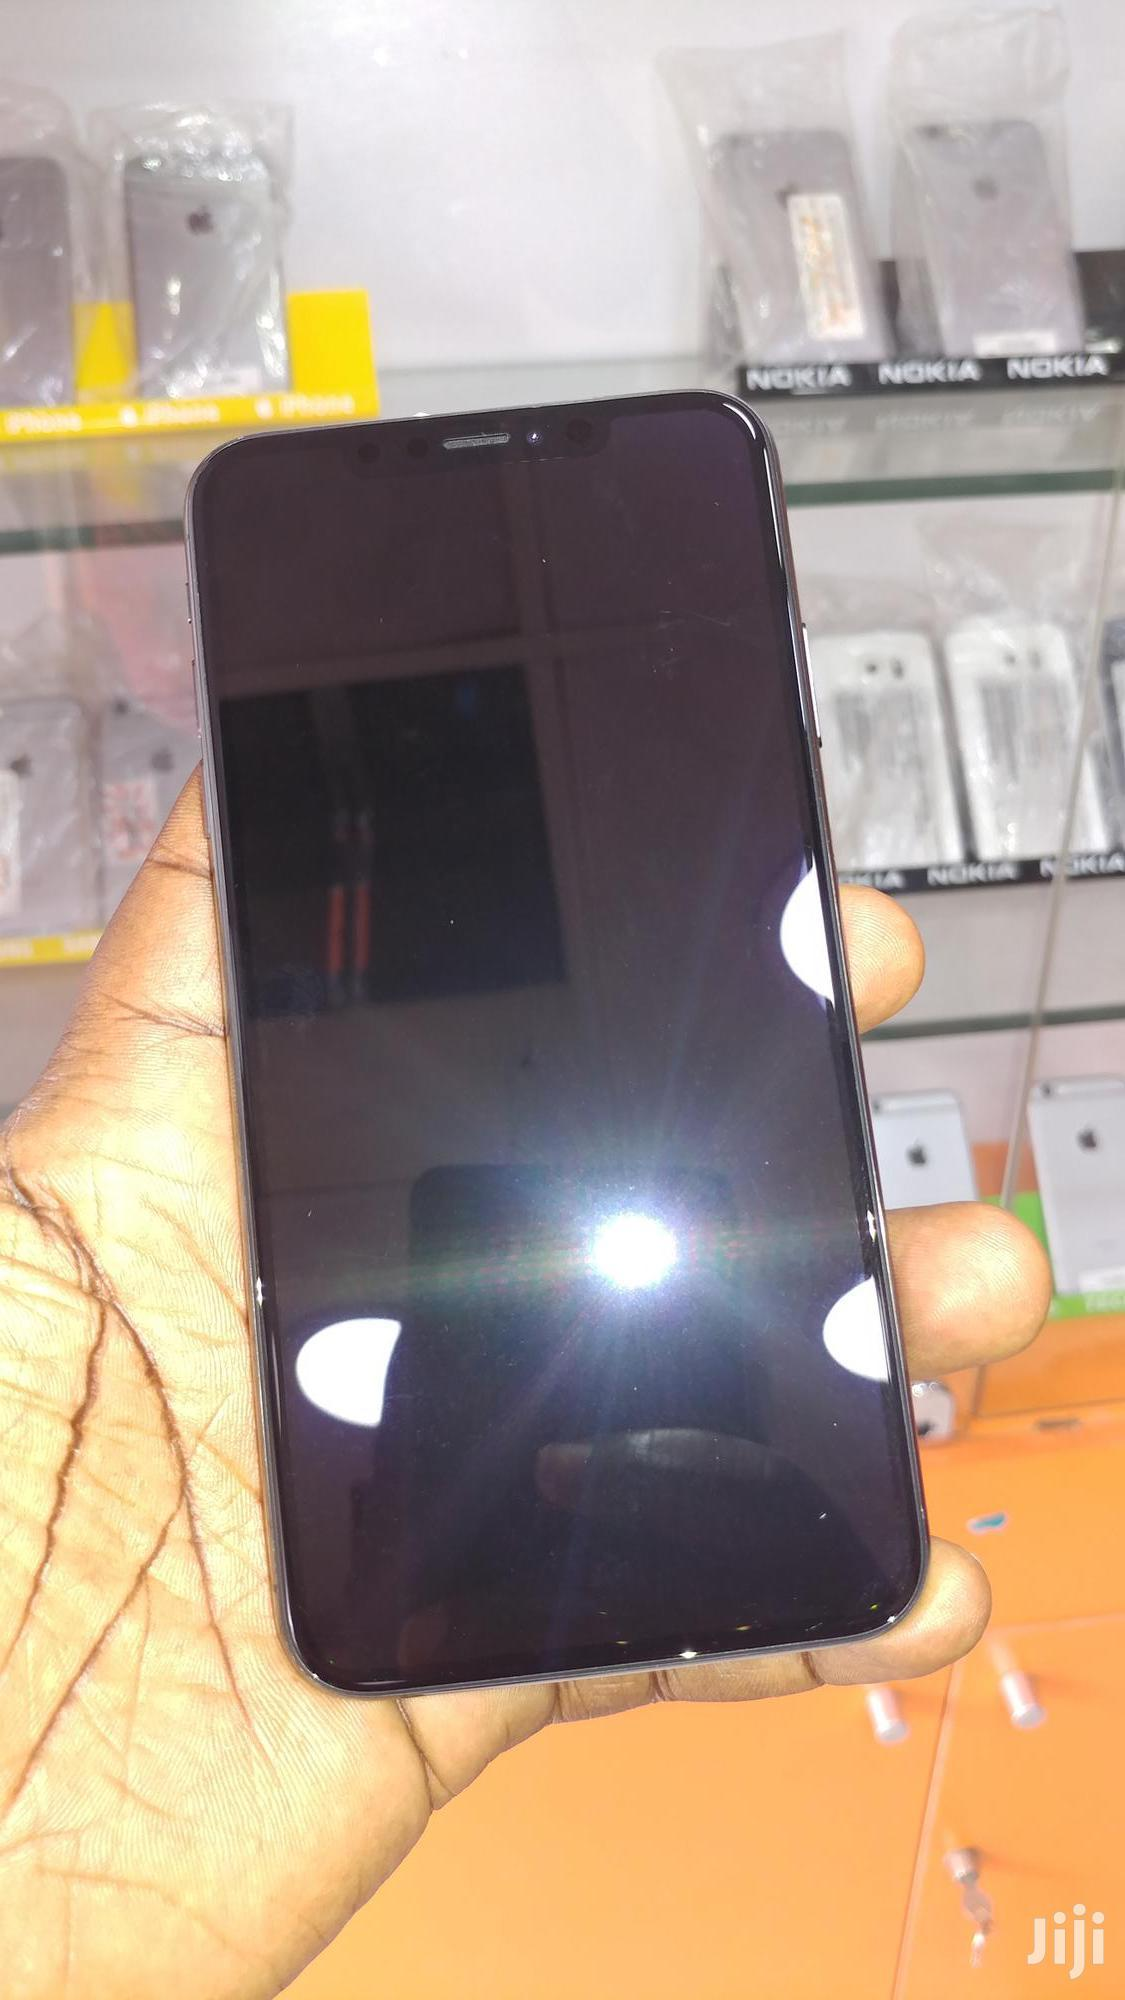 Apple iPhone XS Max 64 GB Gray | Mobile Phones for sale in Ikeja, Lagos State, Nigeria